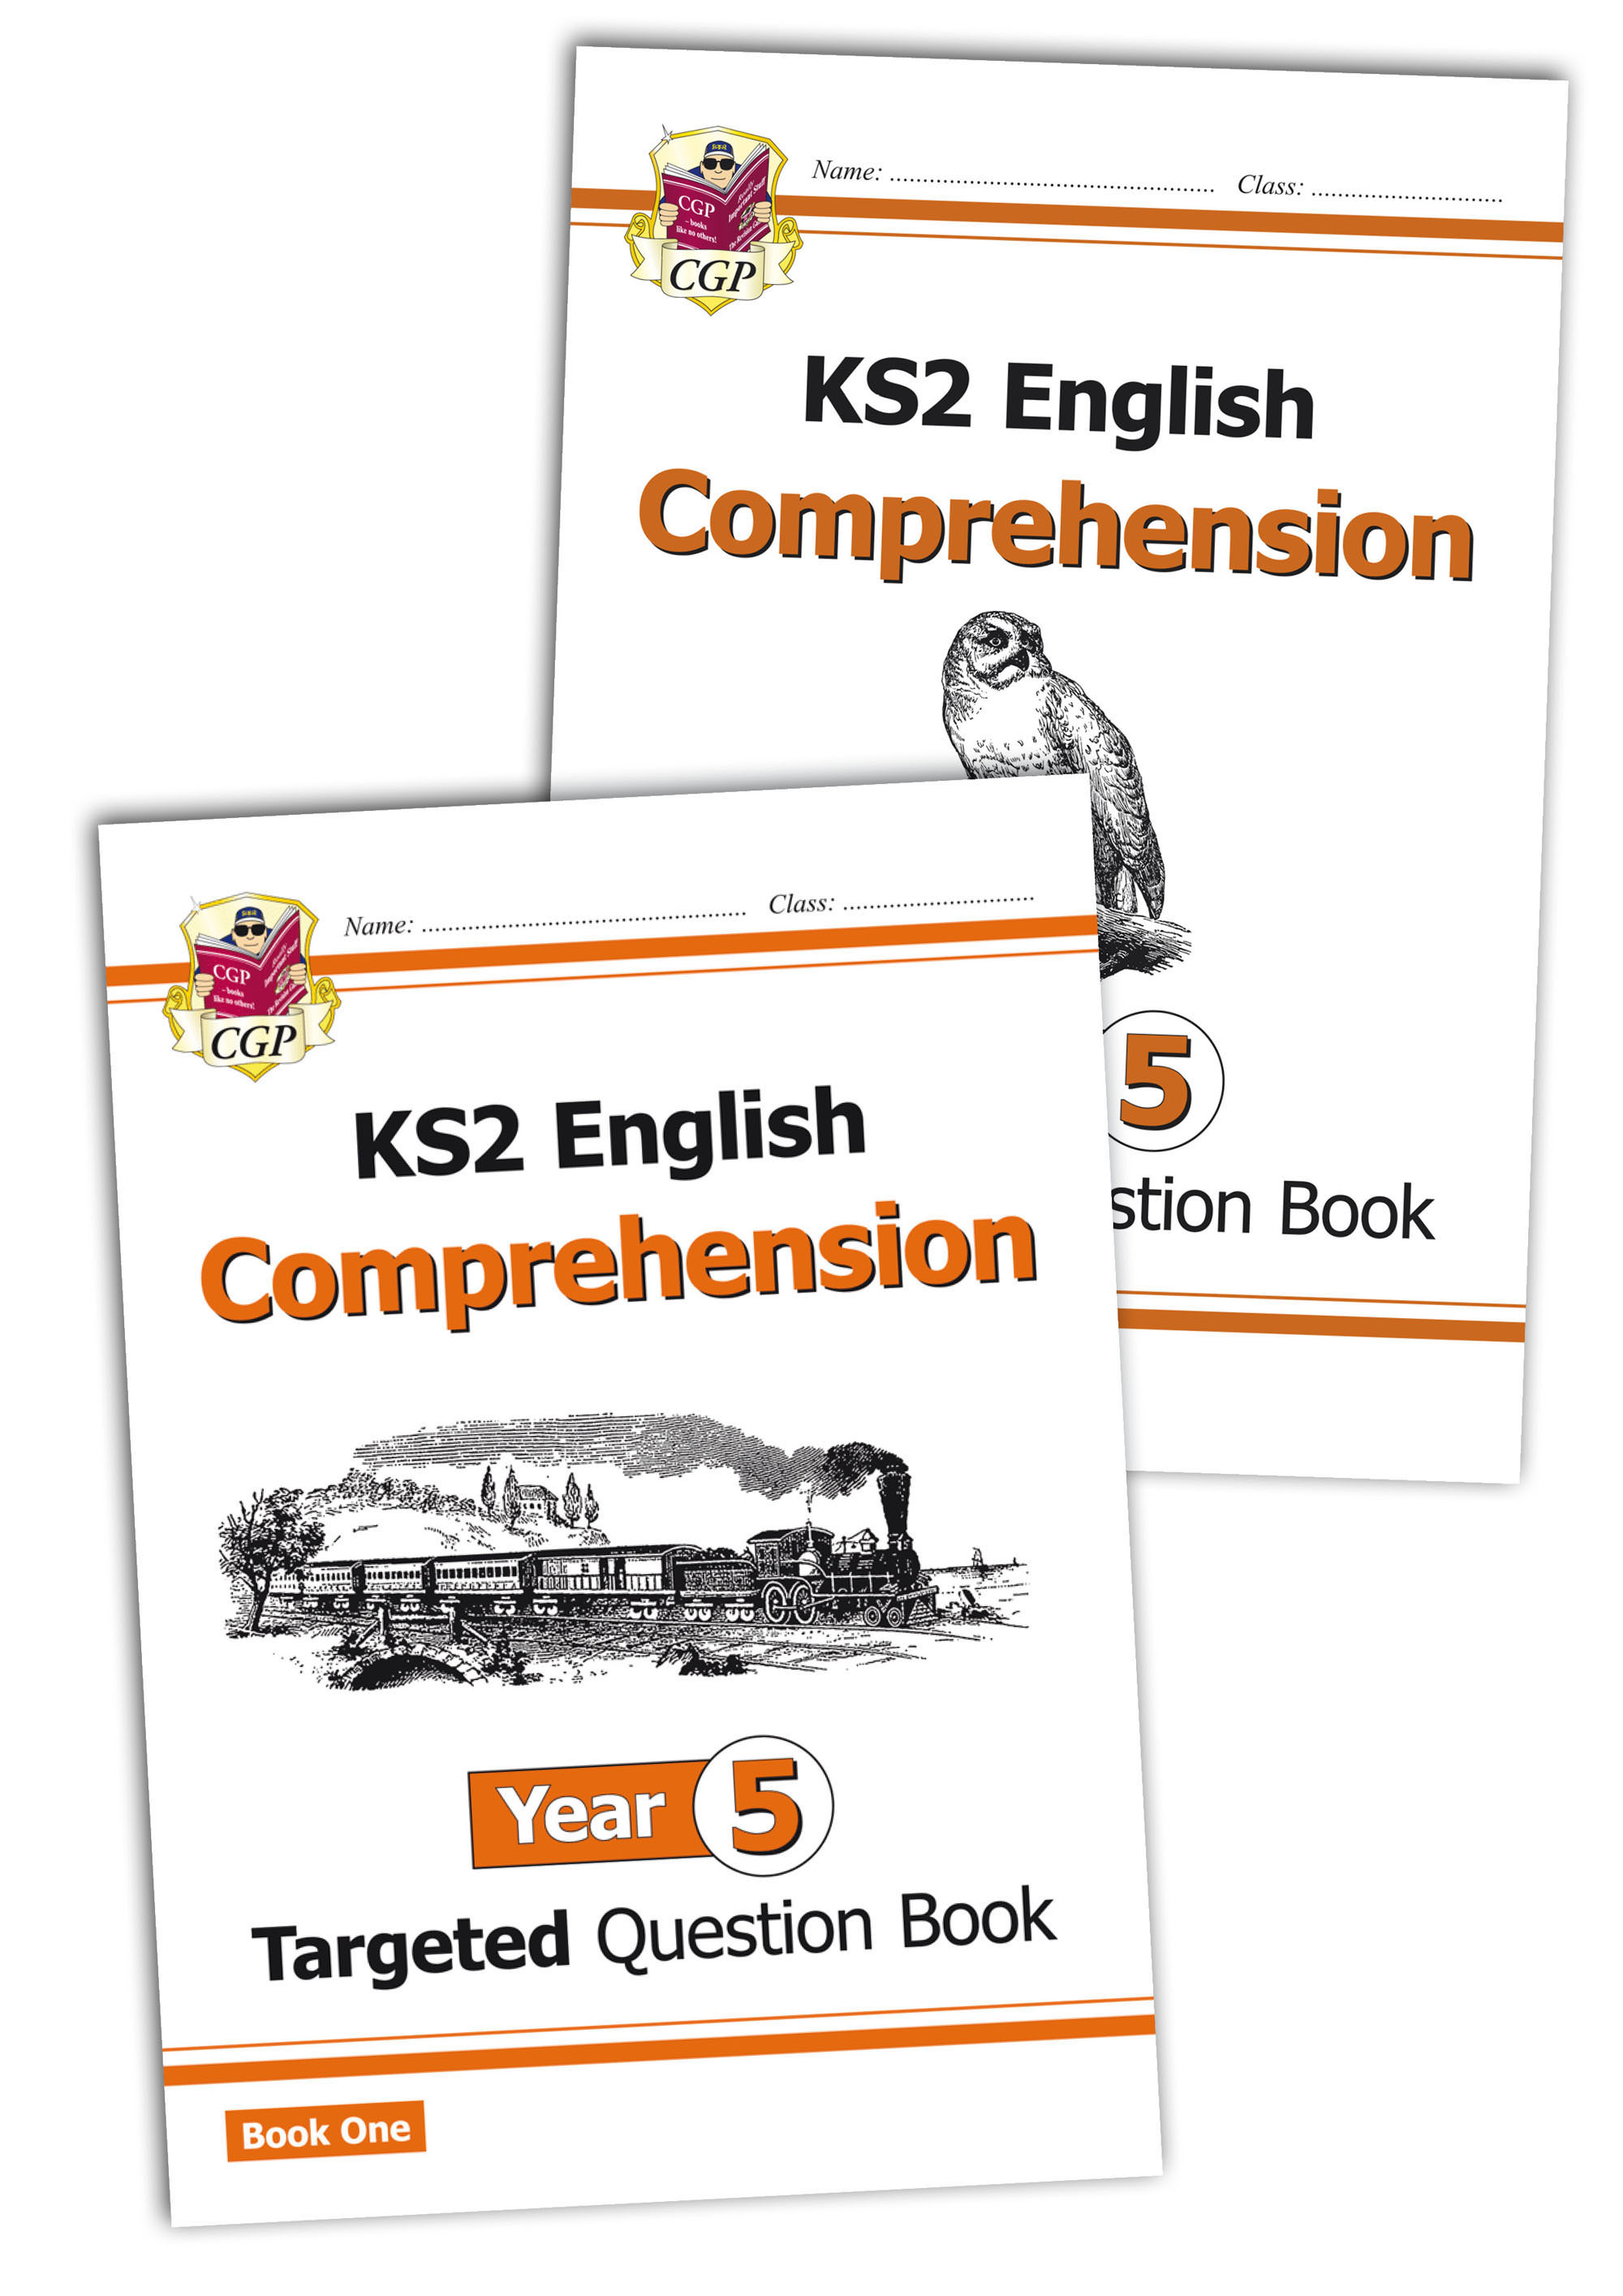 E5CWB21 - KS2 English Targeted Question Book: Year 5 Comprehension - Book 1 & 2 Bundle